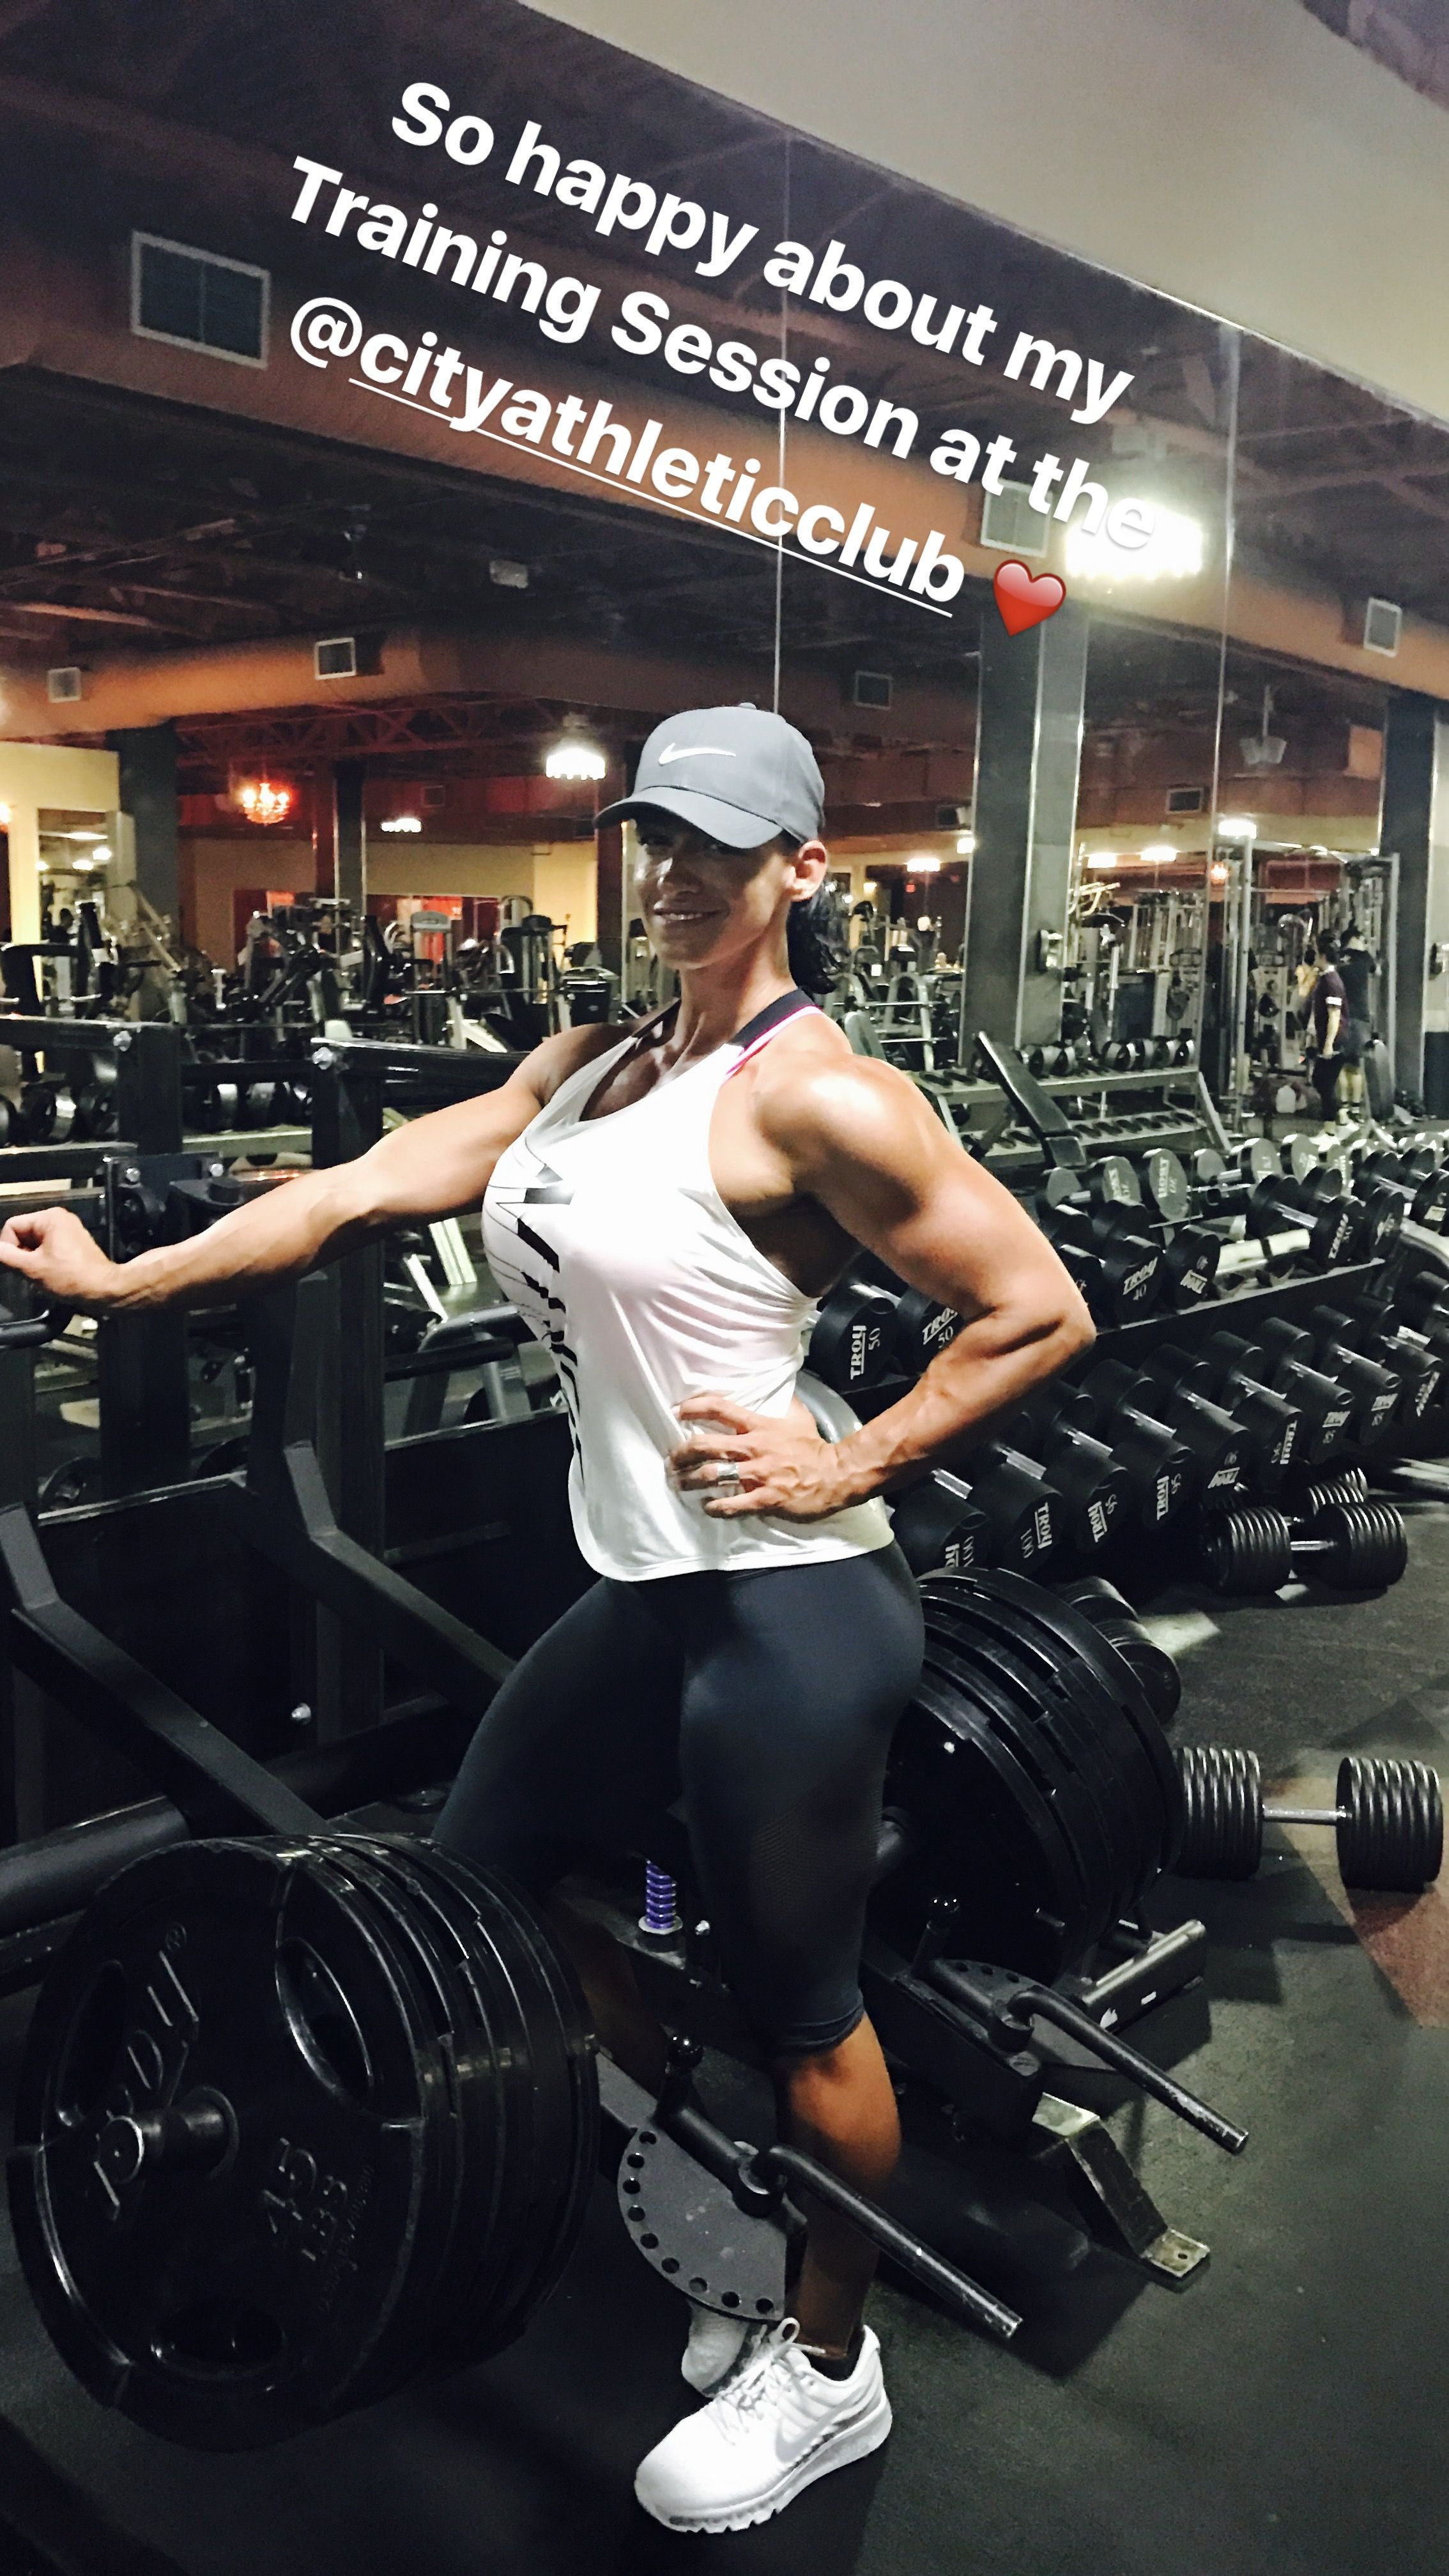 Straight fitness model and personal trainer